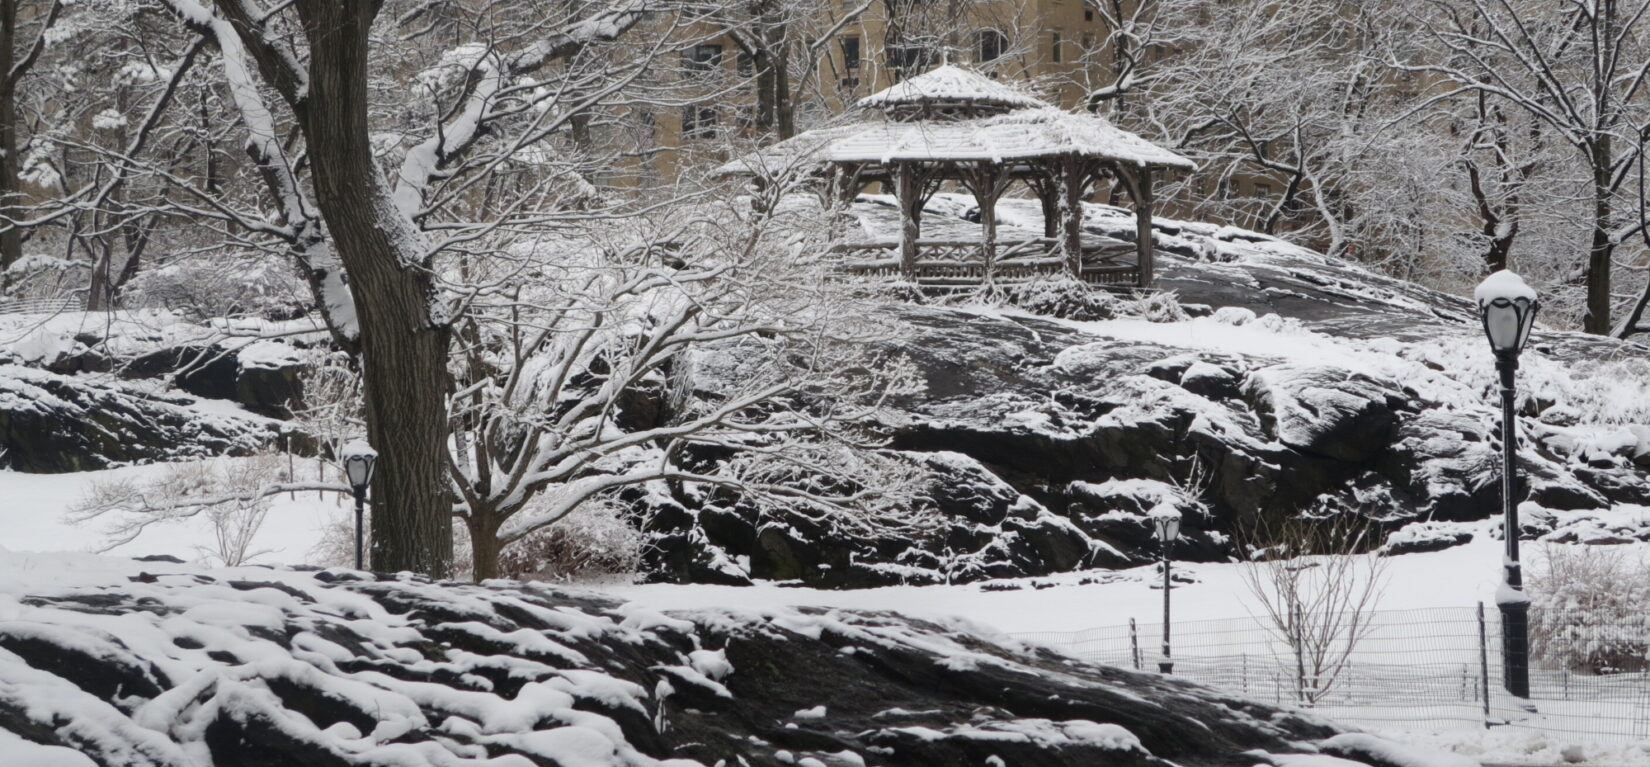 The rustic structure atop the Dene highlights this winter wonderland